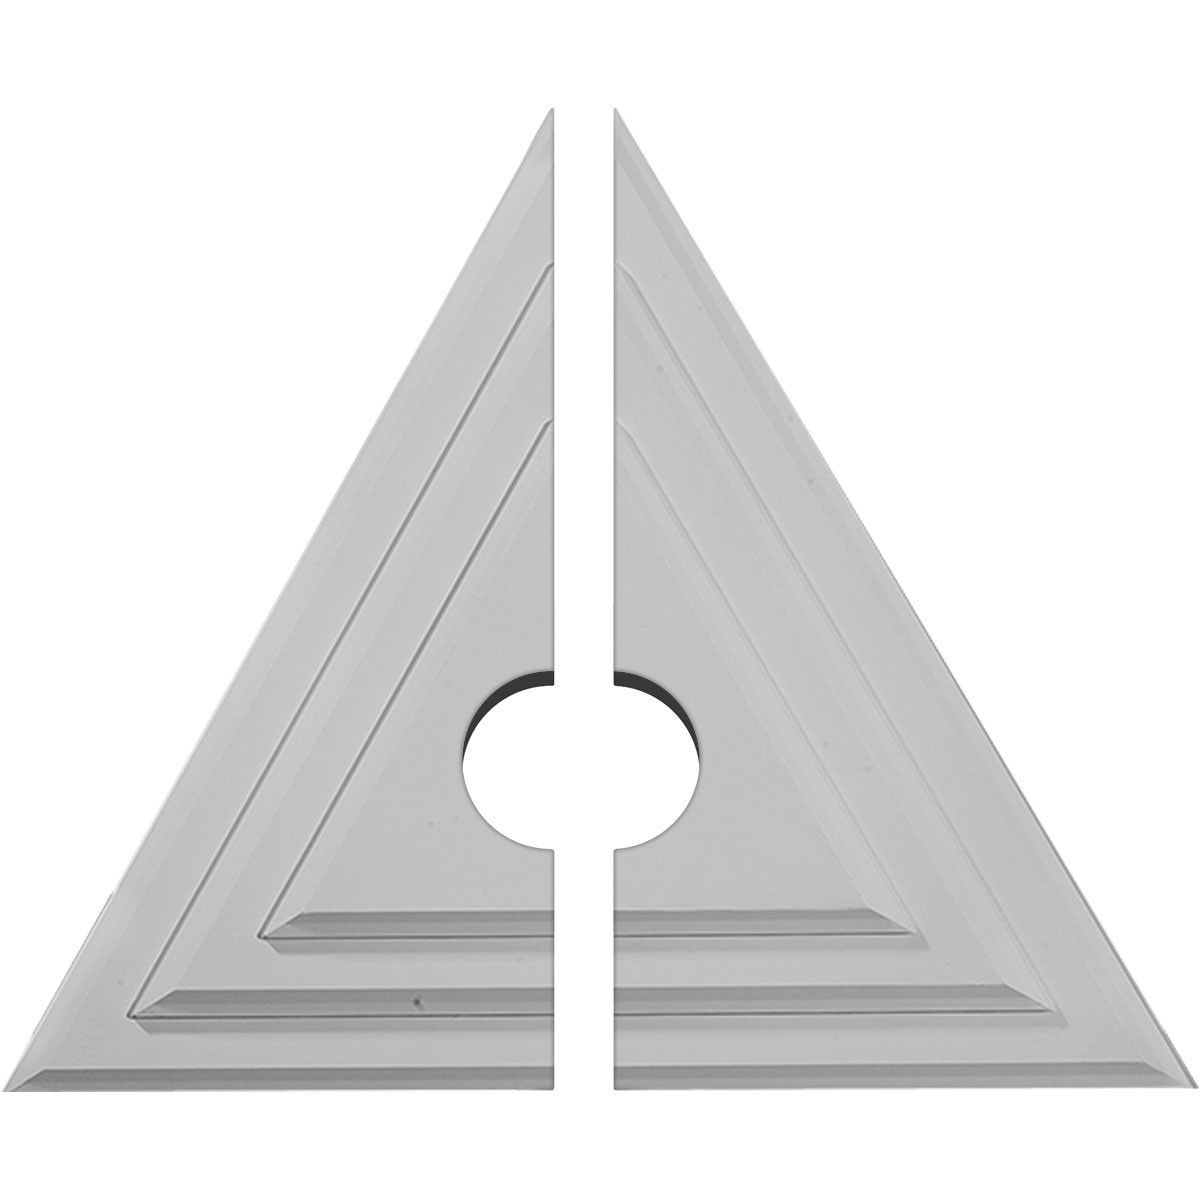 "EM-CM19TG2-03500 - 19""W x 16 5/8""H x 3 1/2""ID x 1 1/8""P Triangle Ceiling Medallion, Two Piece (Fits Canopies up to 3 1/2"")"